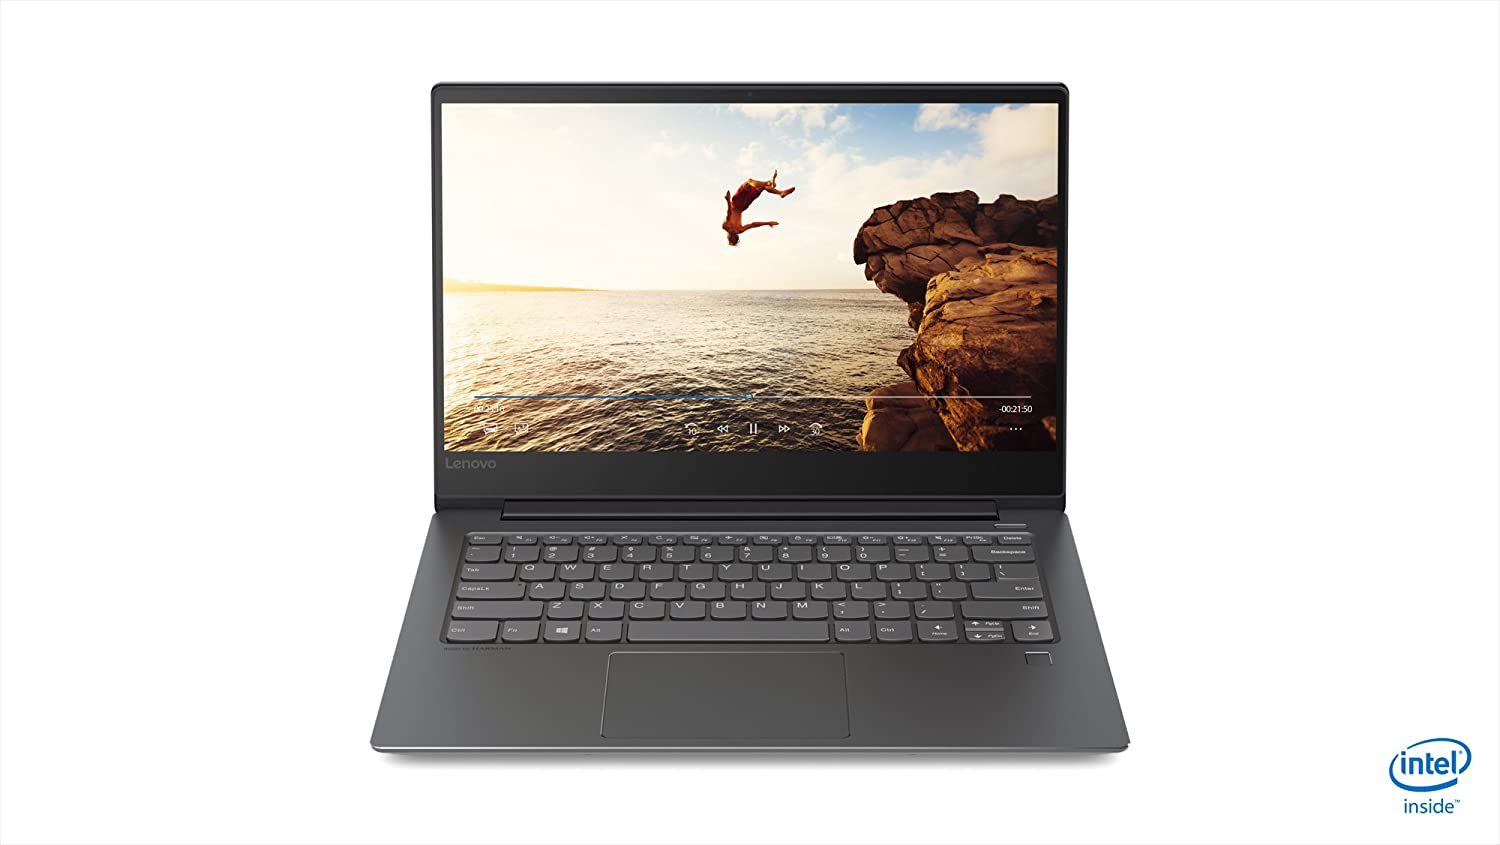 Lenovo Ideapad 530S 14-Inch Laptop